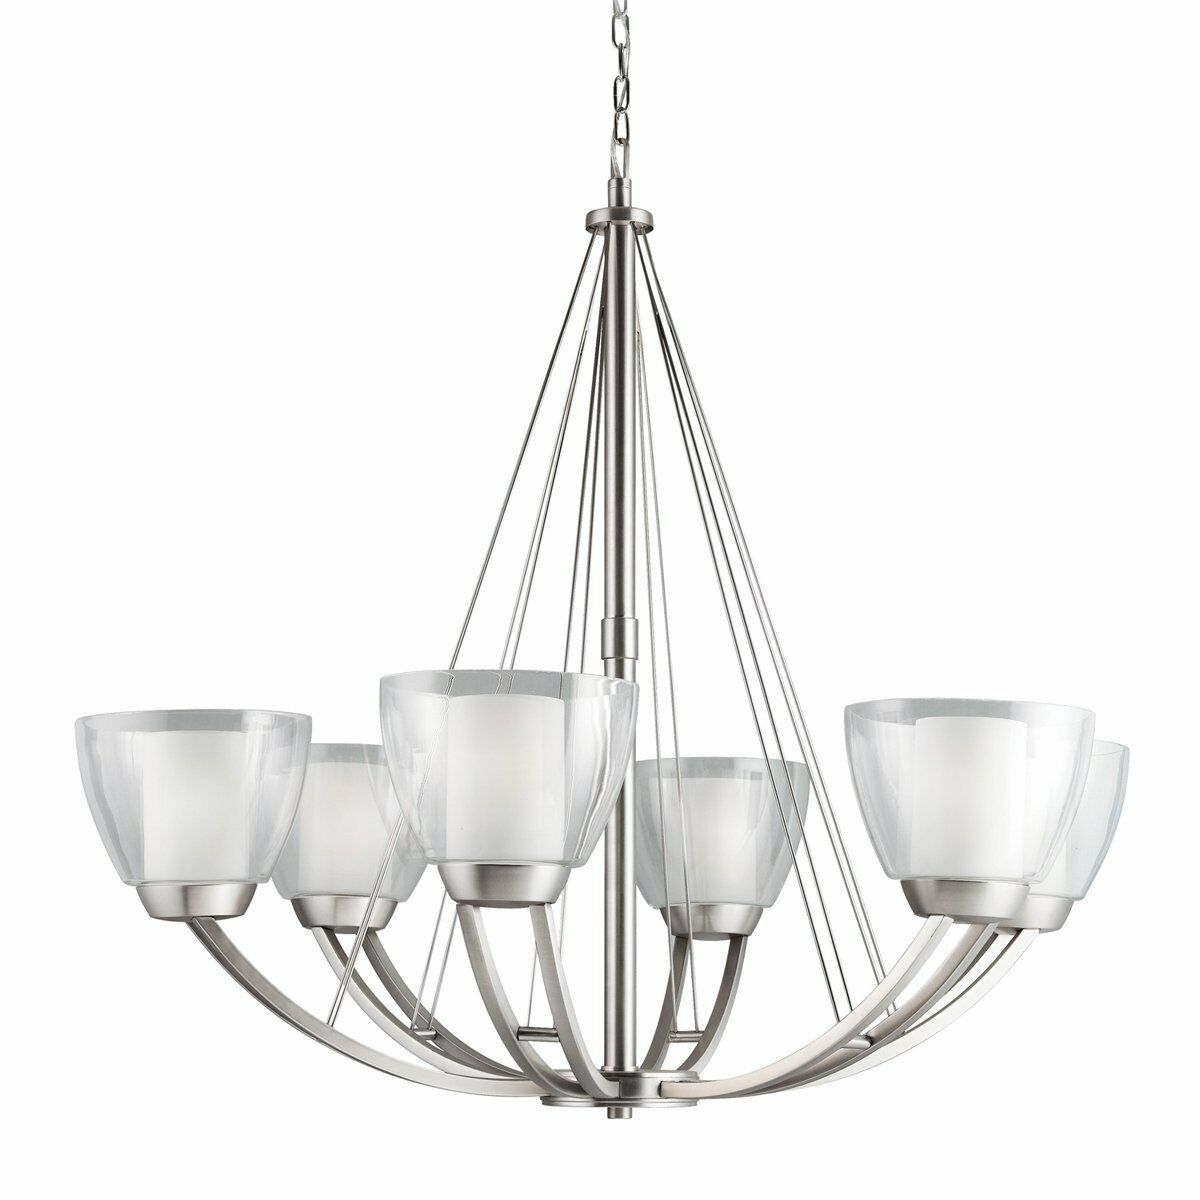 1999ni 6 light lucia large chandelier brushed